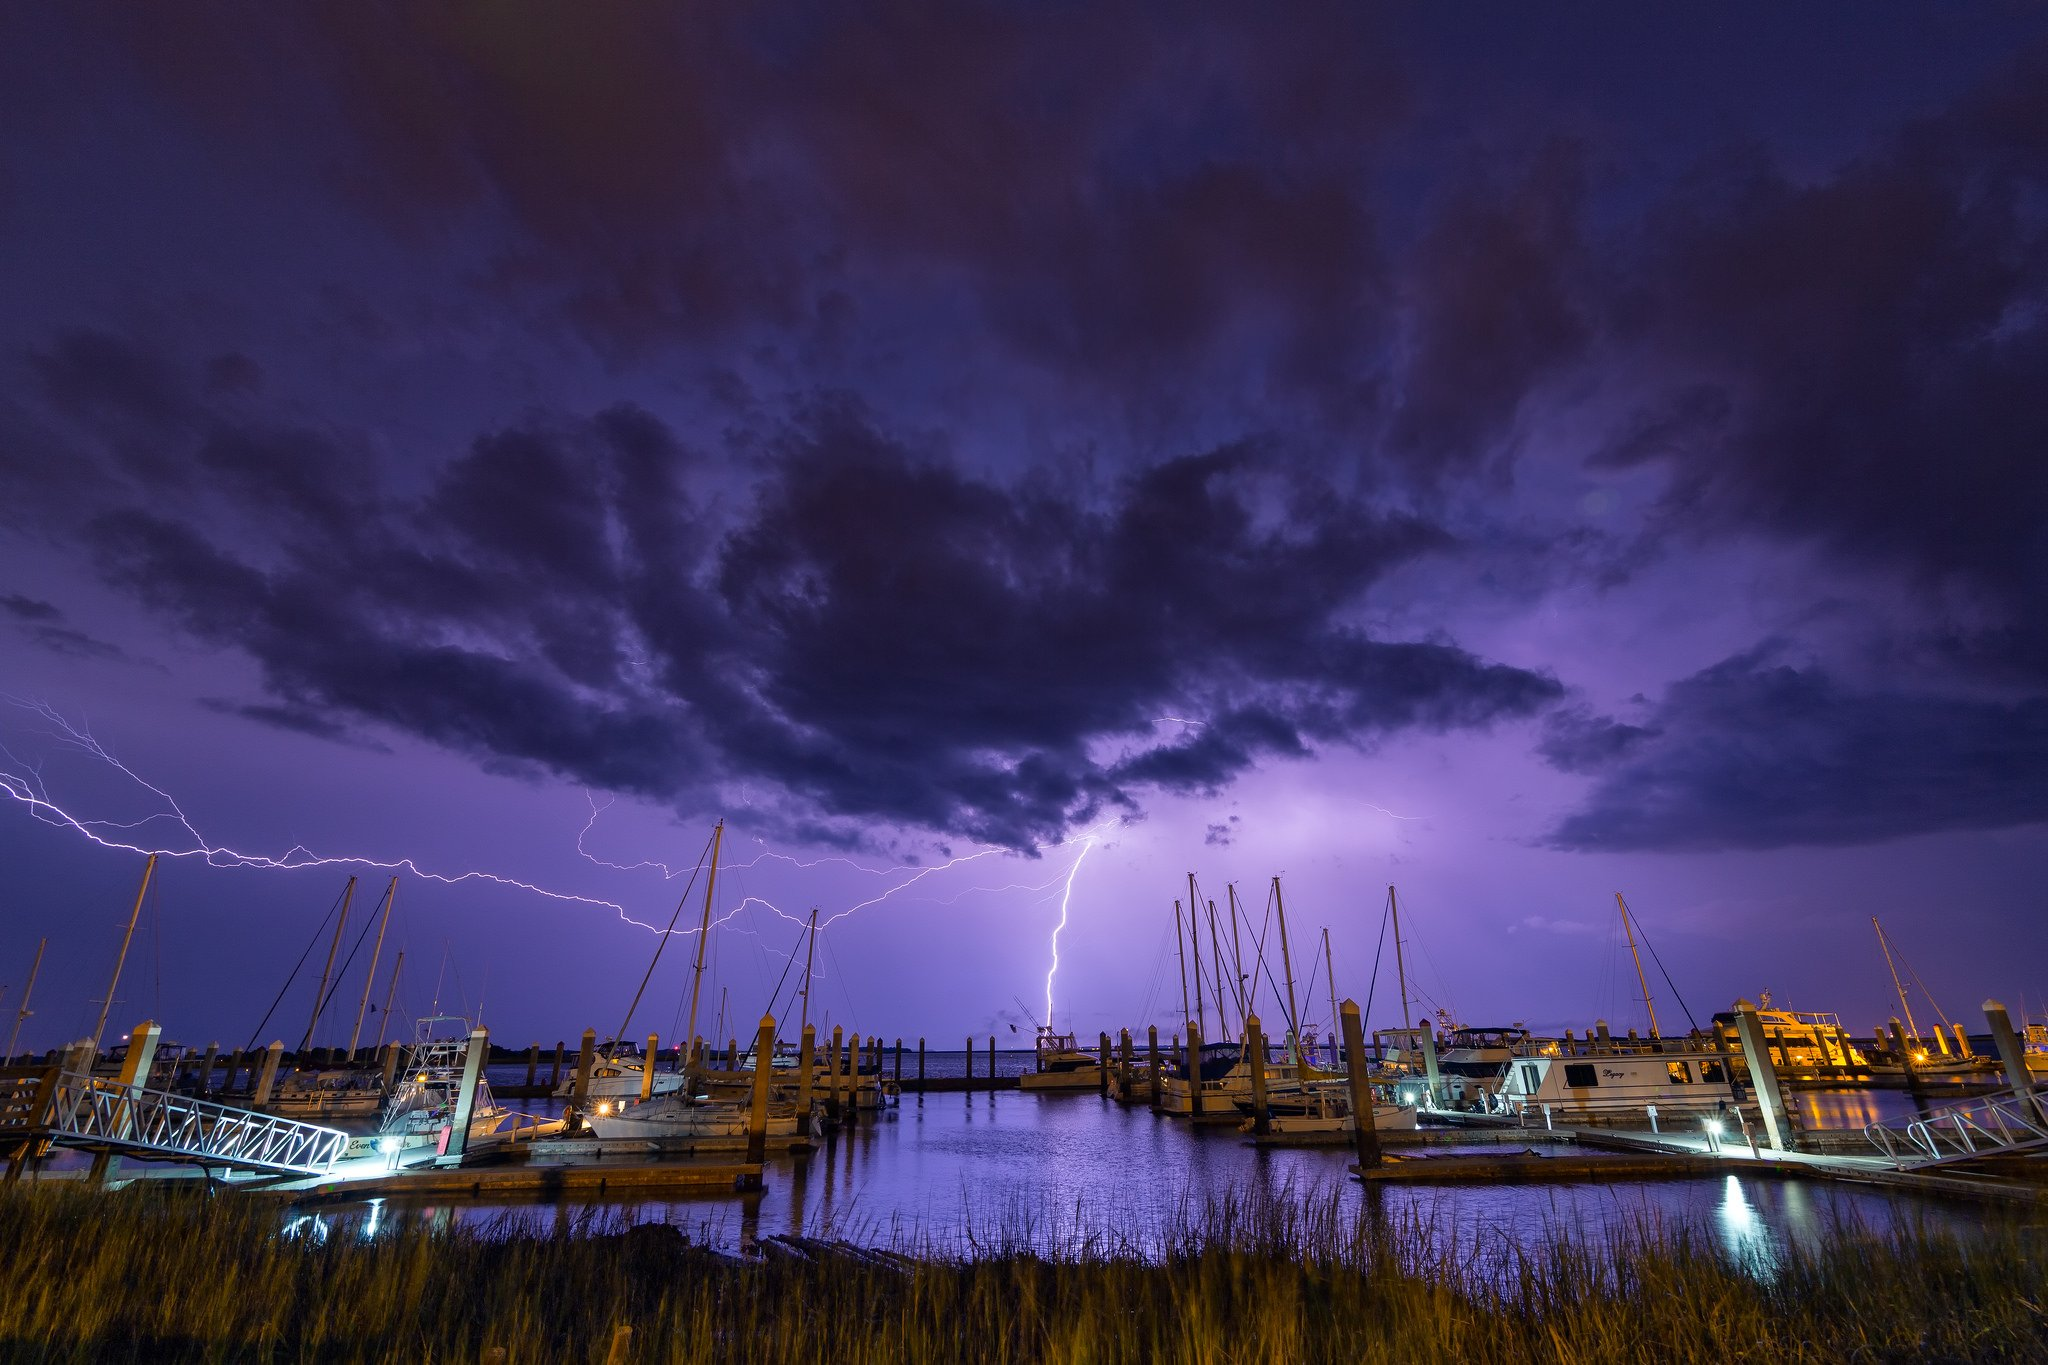 Thunder storn flash lightning sky night eclair nuit foudre nature walppaper wallpaper | 2048x1365 | 445903 | WallpaperUP